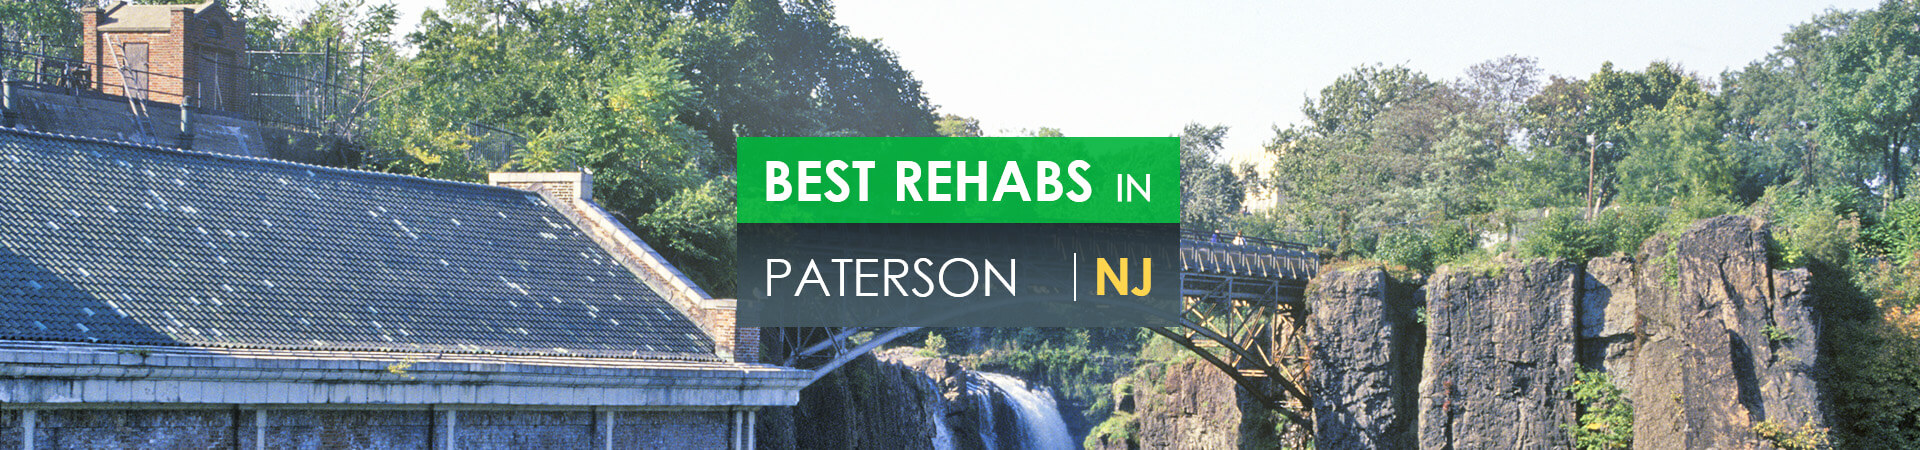 Best rehabs in Paterson, NJ